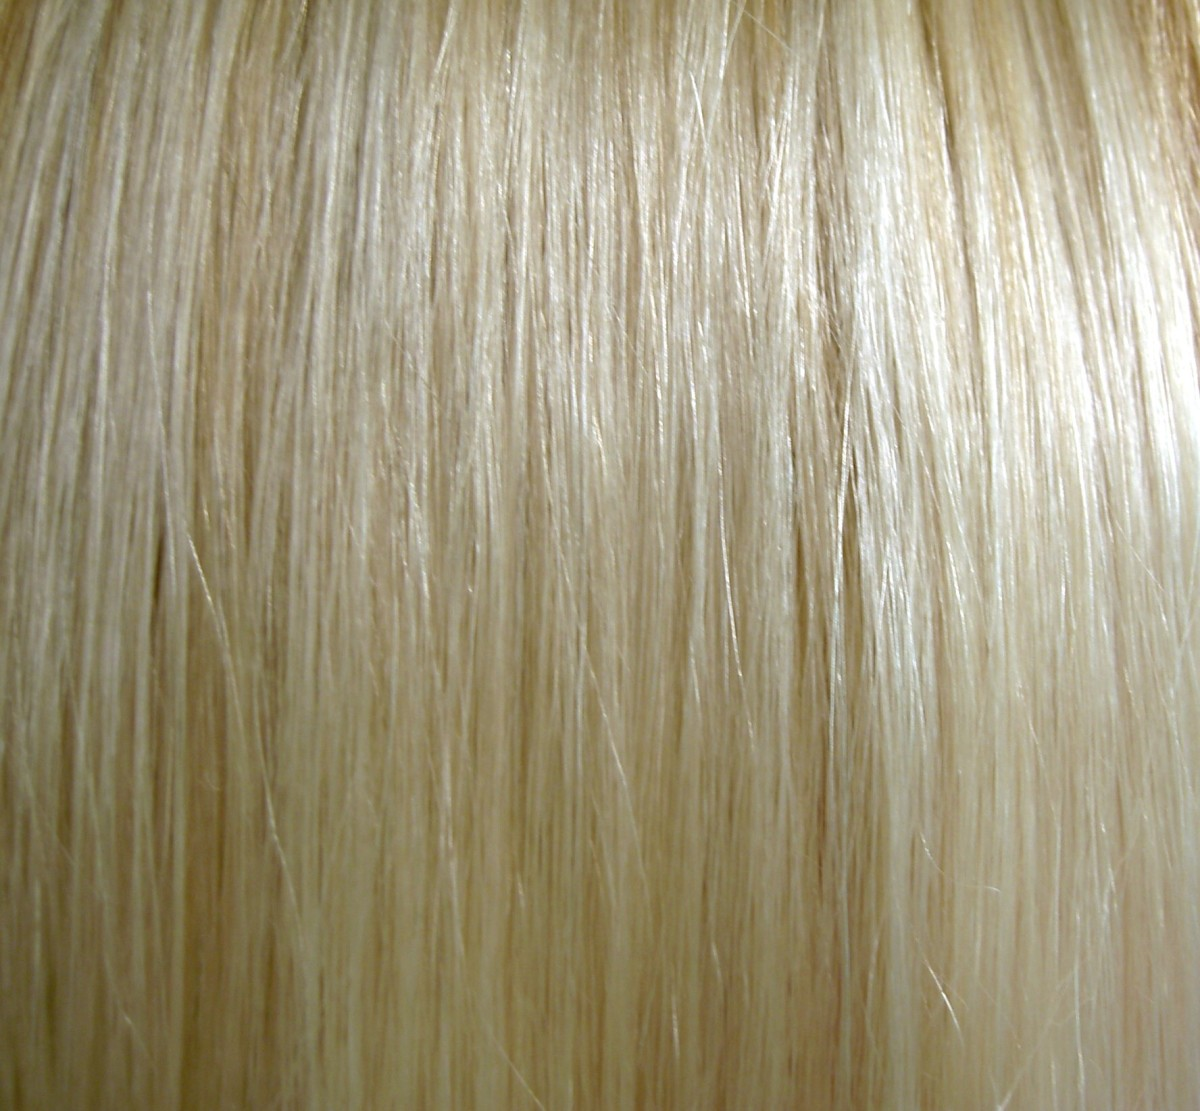 Photo: Hair Washed With Baking Soda is Shiny and Looks Lighter.